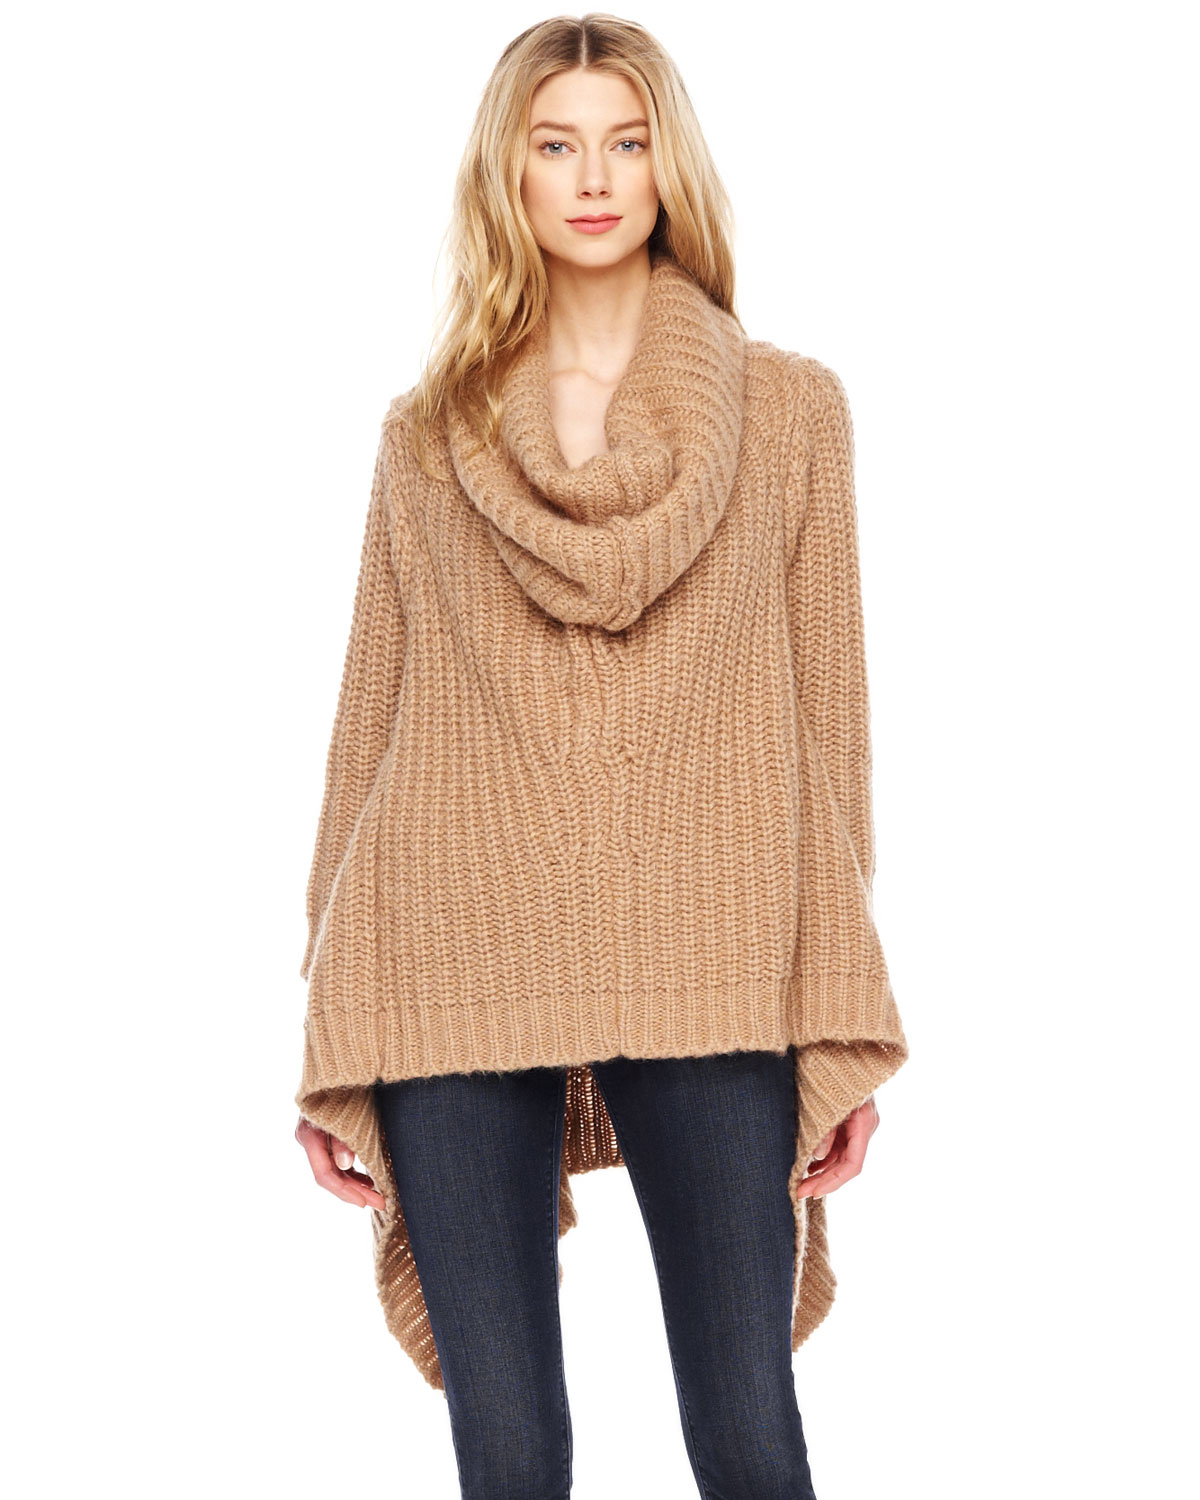 Michael kors Michael Oversize Cowlneck Sweater in Natural | Lyst